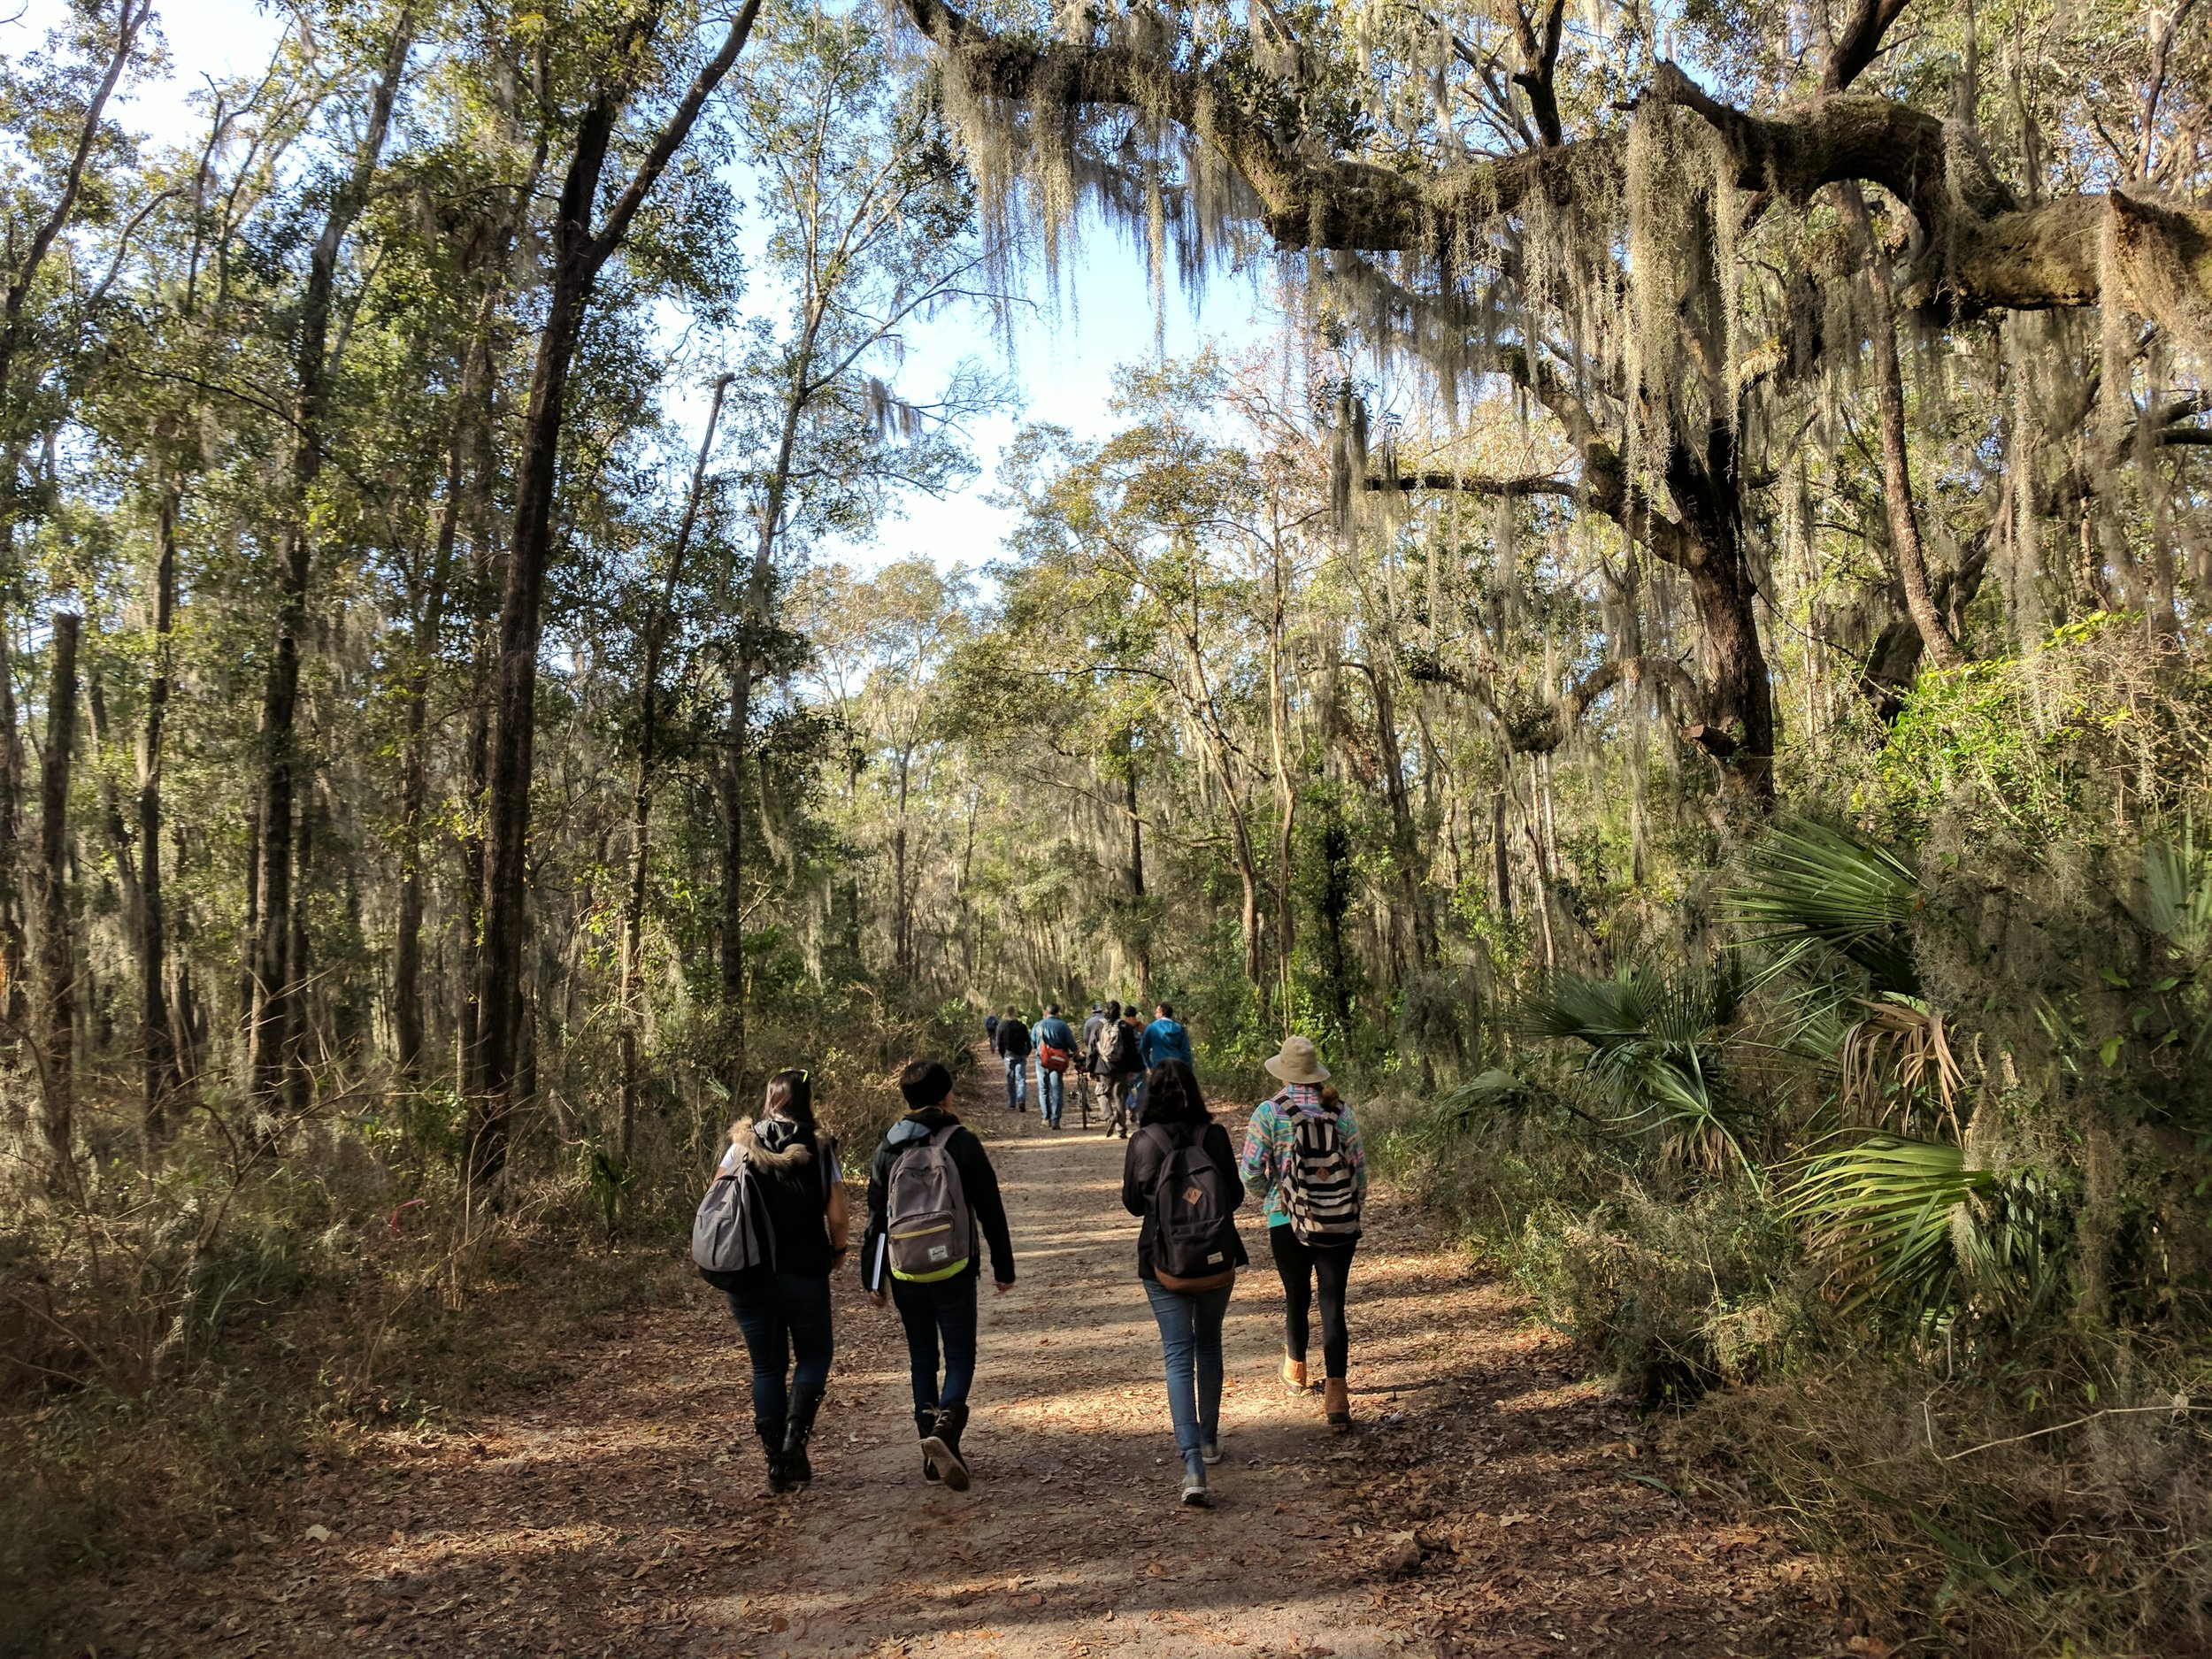 Photograph from a class trip to partake in a biomimicry iSite where we got to experience local biodiversity with an eye mask on, only able to describe our surroundings by touch.